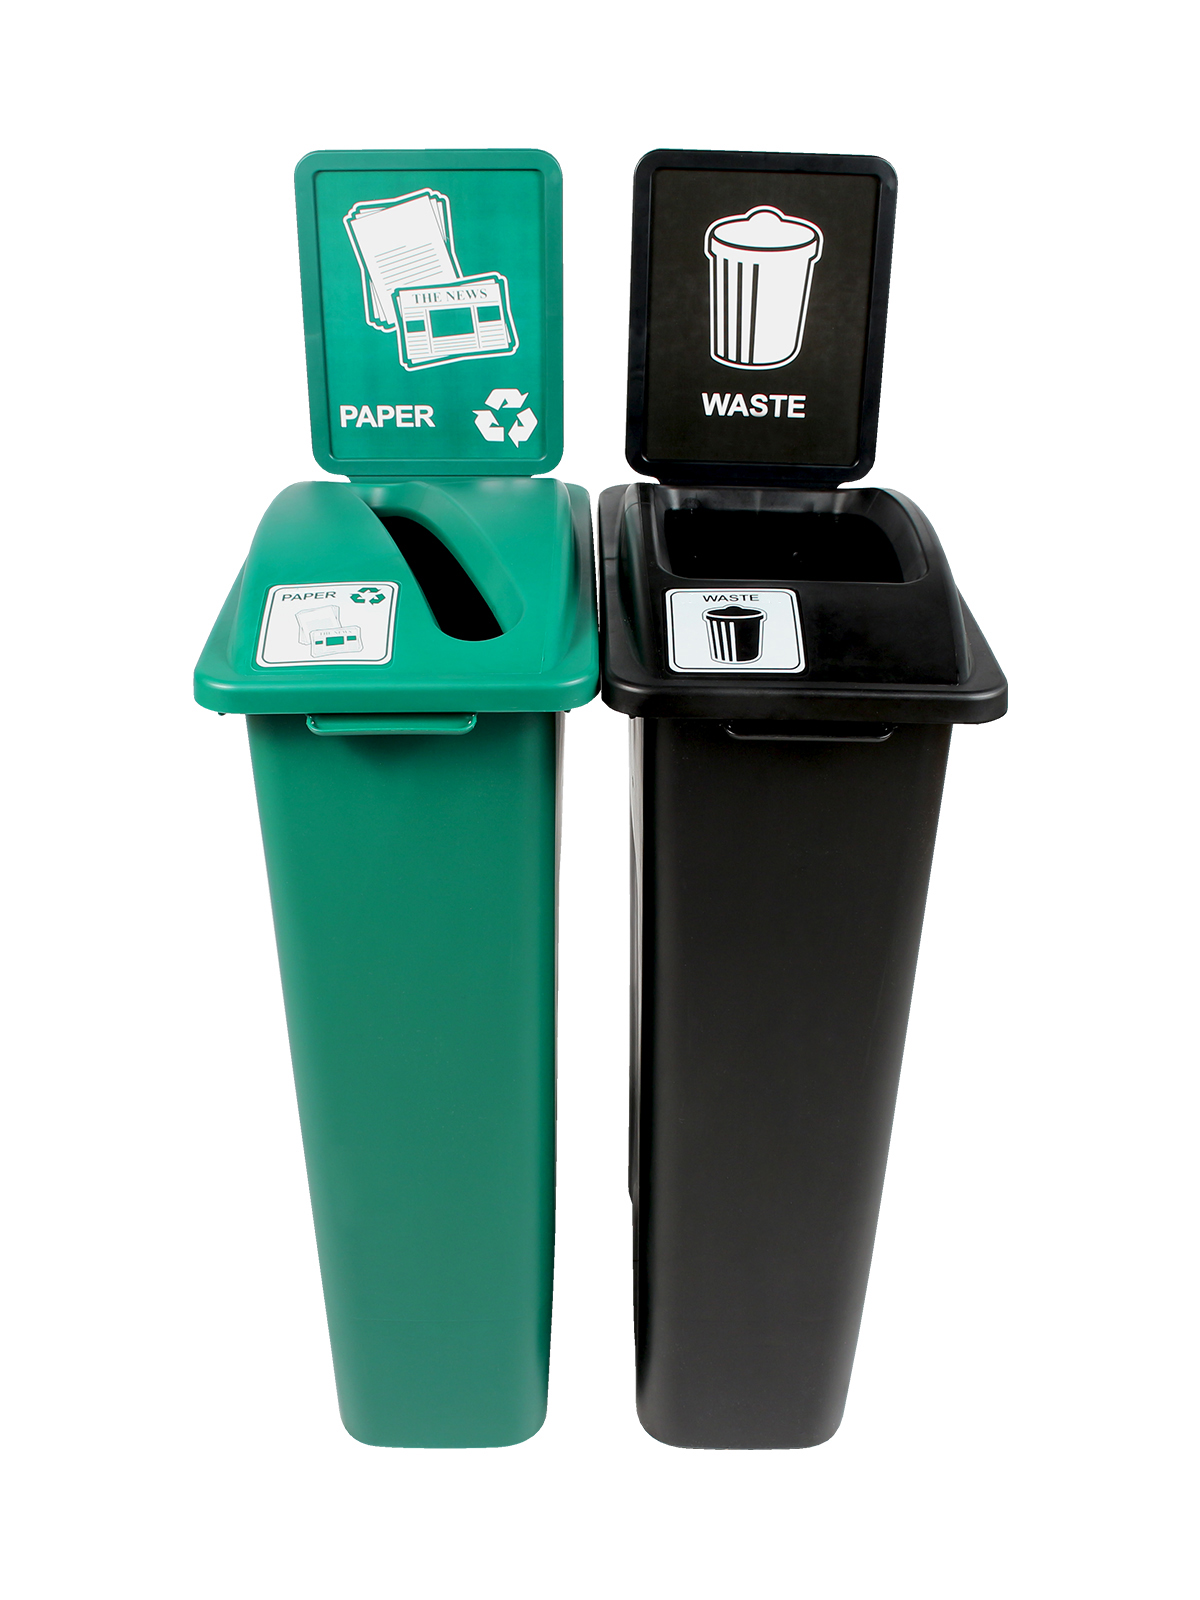 WASTE WATCHER - Double - Paper-Waste - Slot-Full - Green-Black